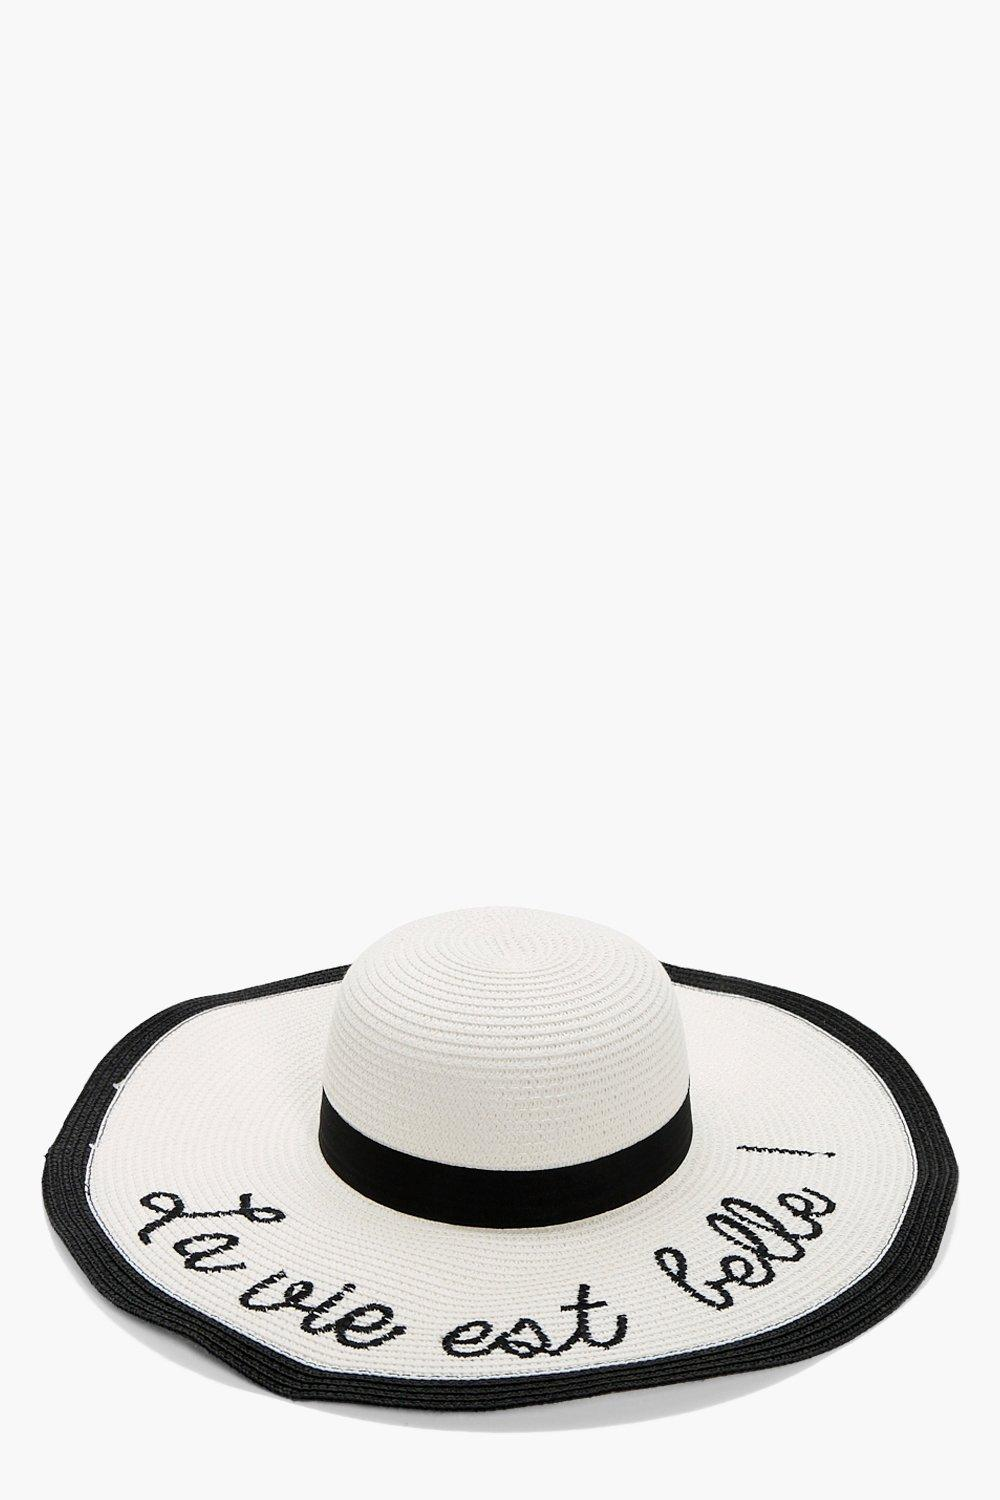 Slogan Summer Floppy Hat - white - Sally Slogan Su